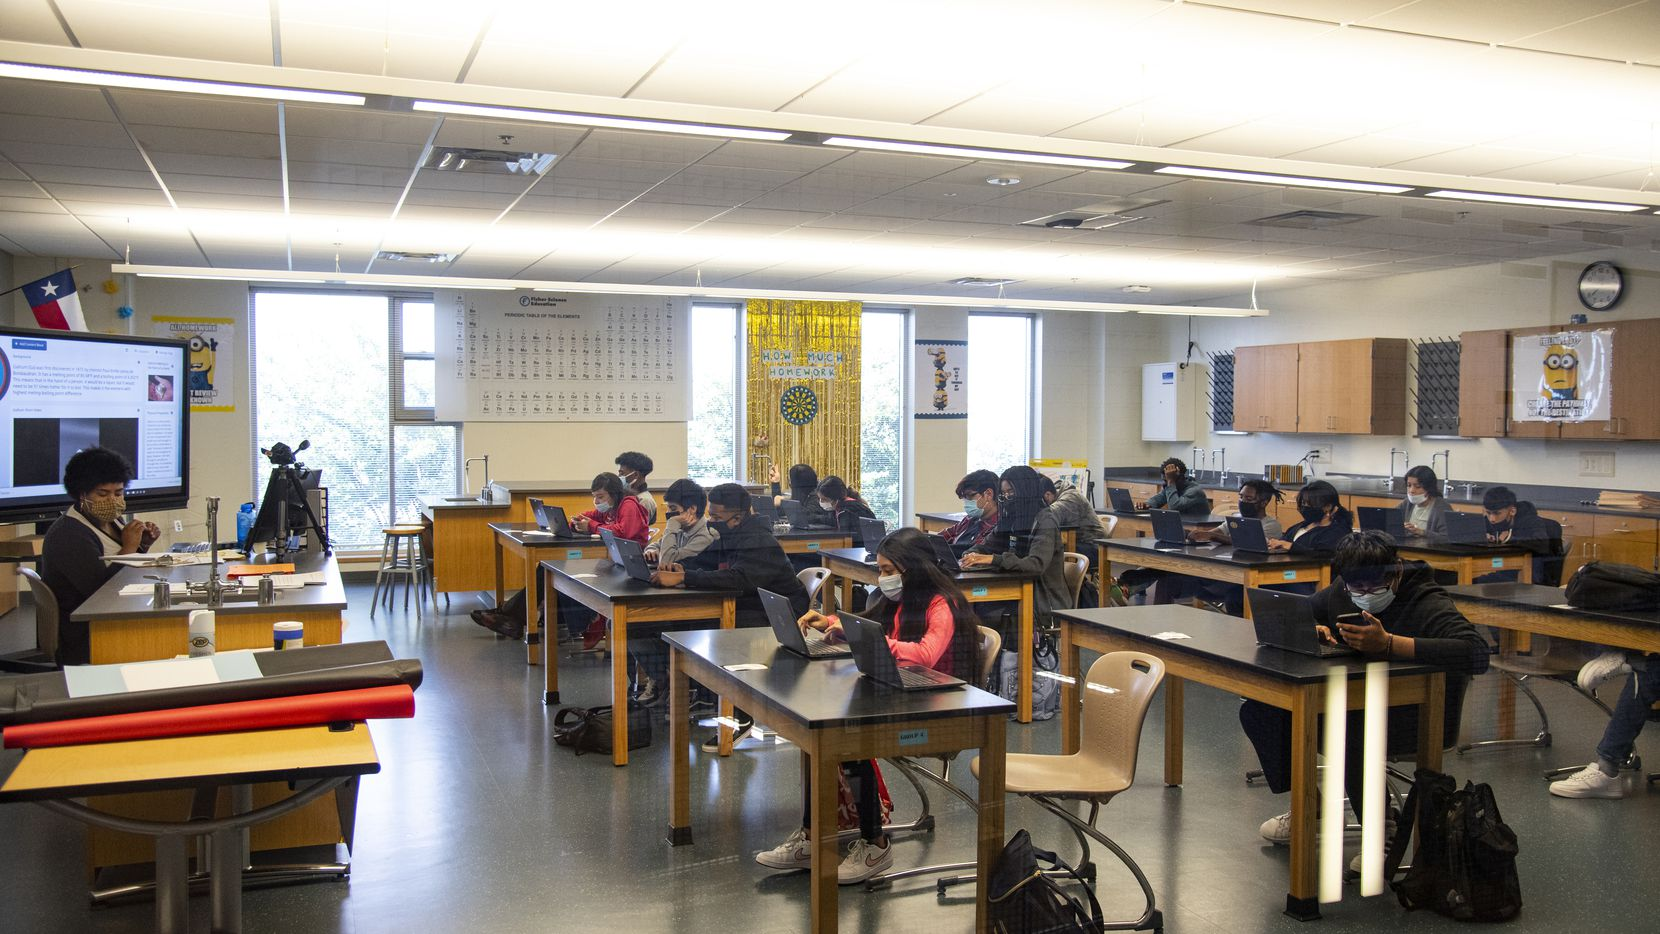 Students participate in an AP Chemistry class at Kathlyn Joy Gilliam Collegiate Academy on Tuesday, September 21, 2021 in Dallas, Texas. (Emil Lippe/Special Contributor)